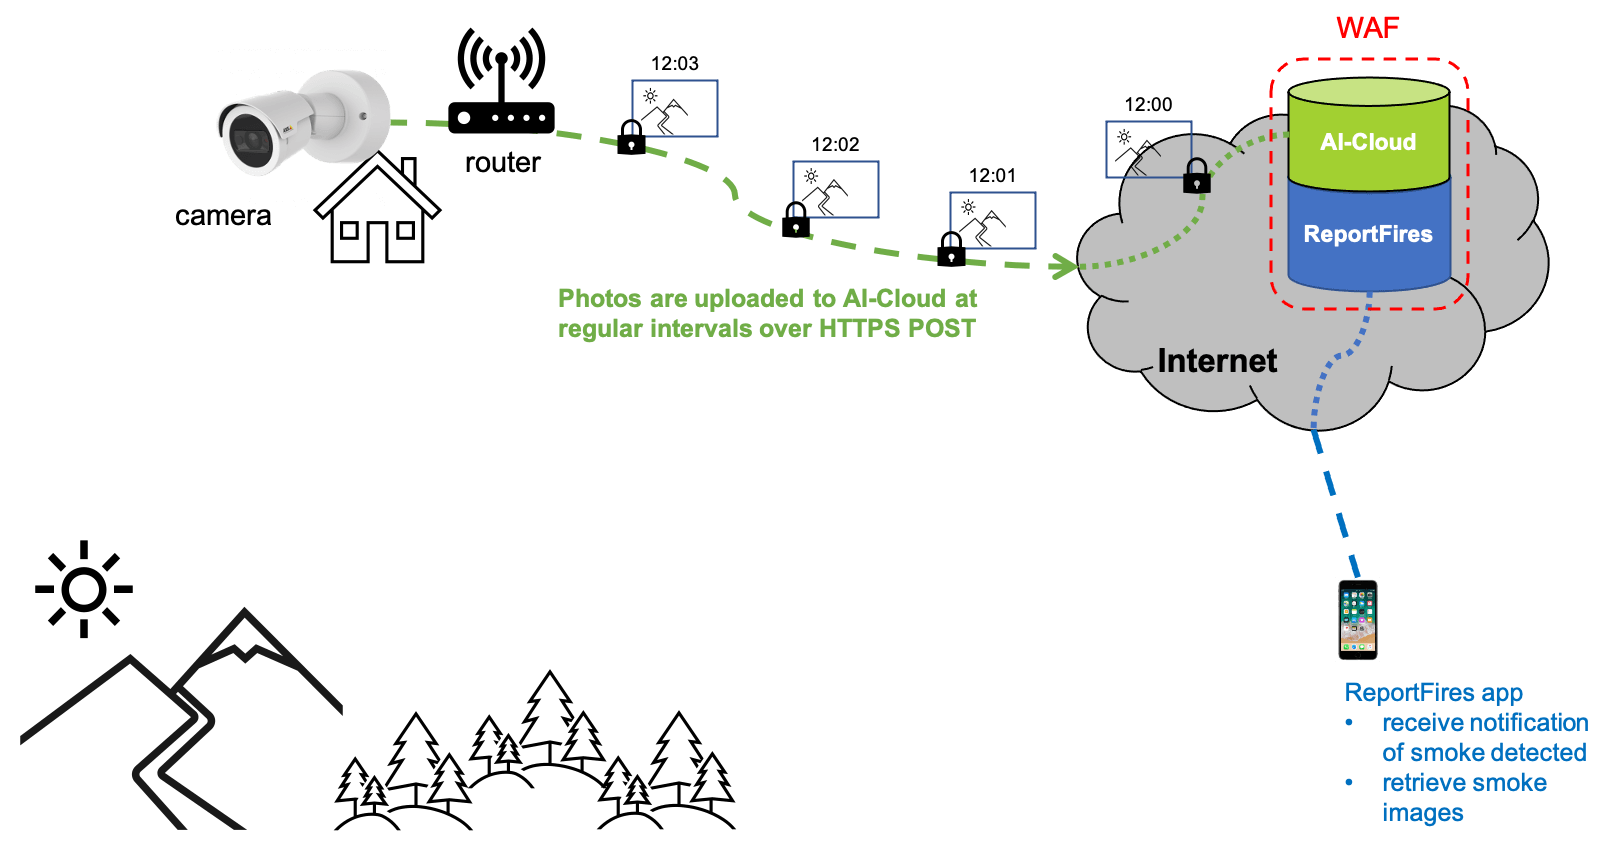 Figure 2: network camera uploads photos to AI-Cloud over HTTPS POST